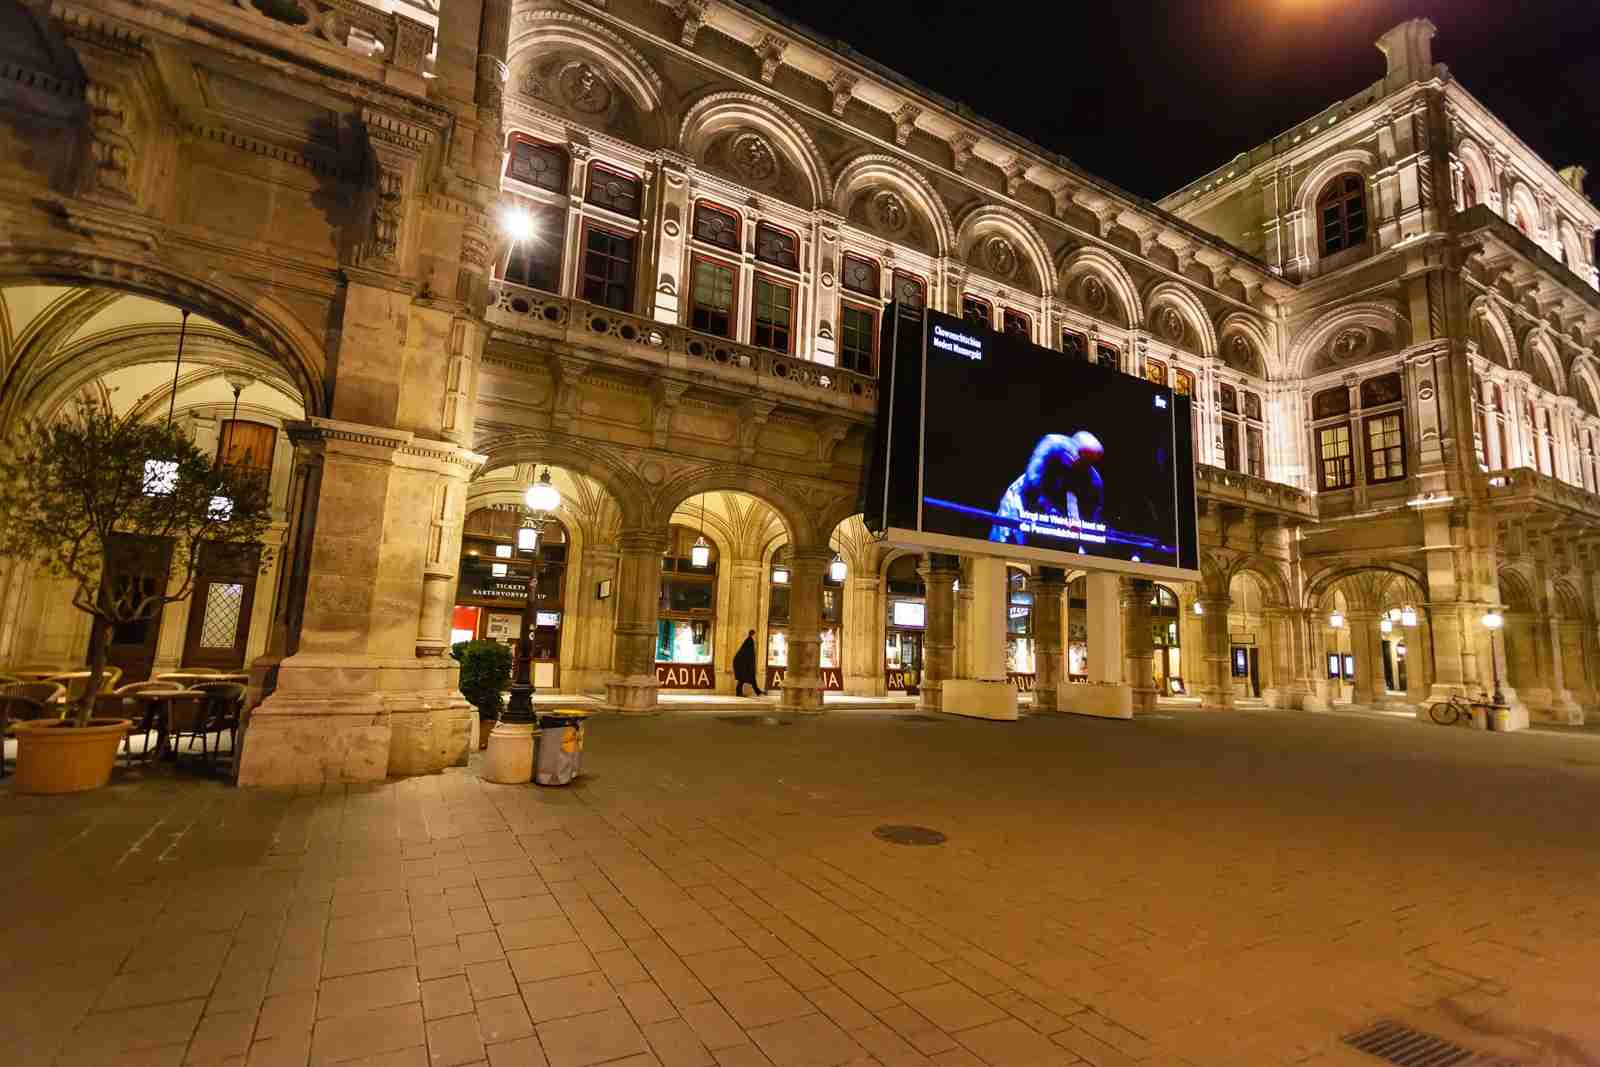 The Oper live am Platz in Austria. (Photo by VvoeVale/Getty Images)